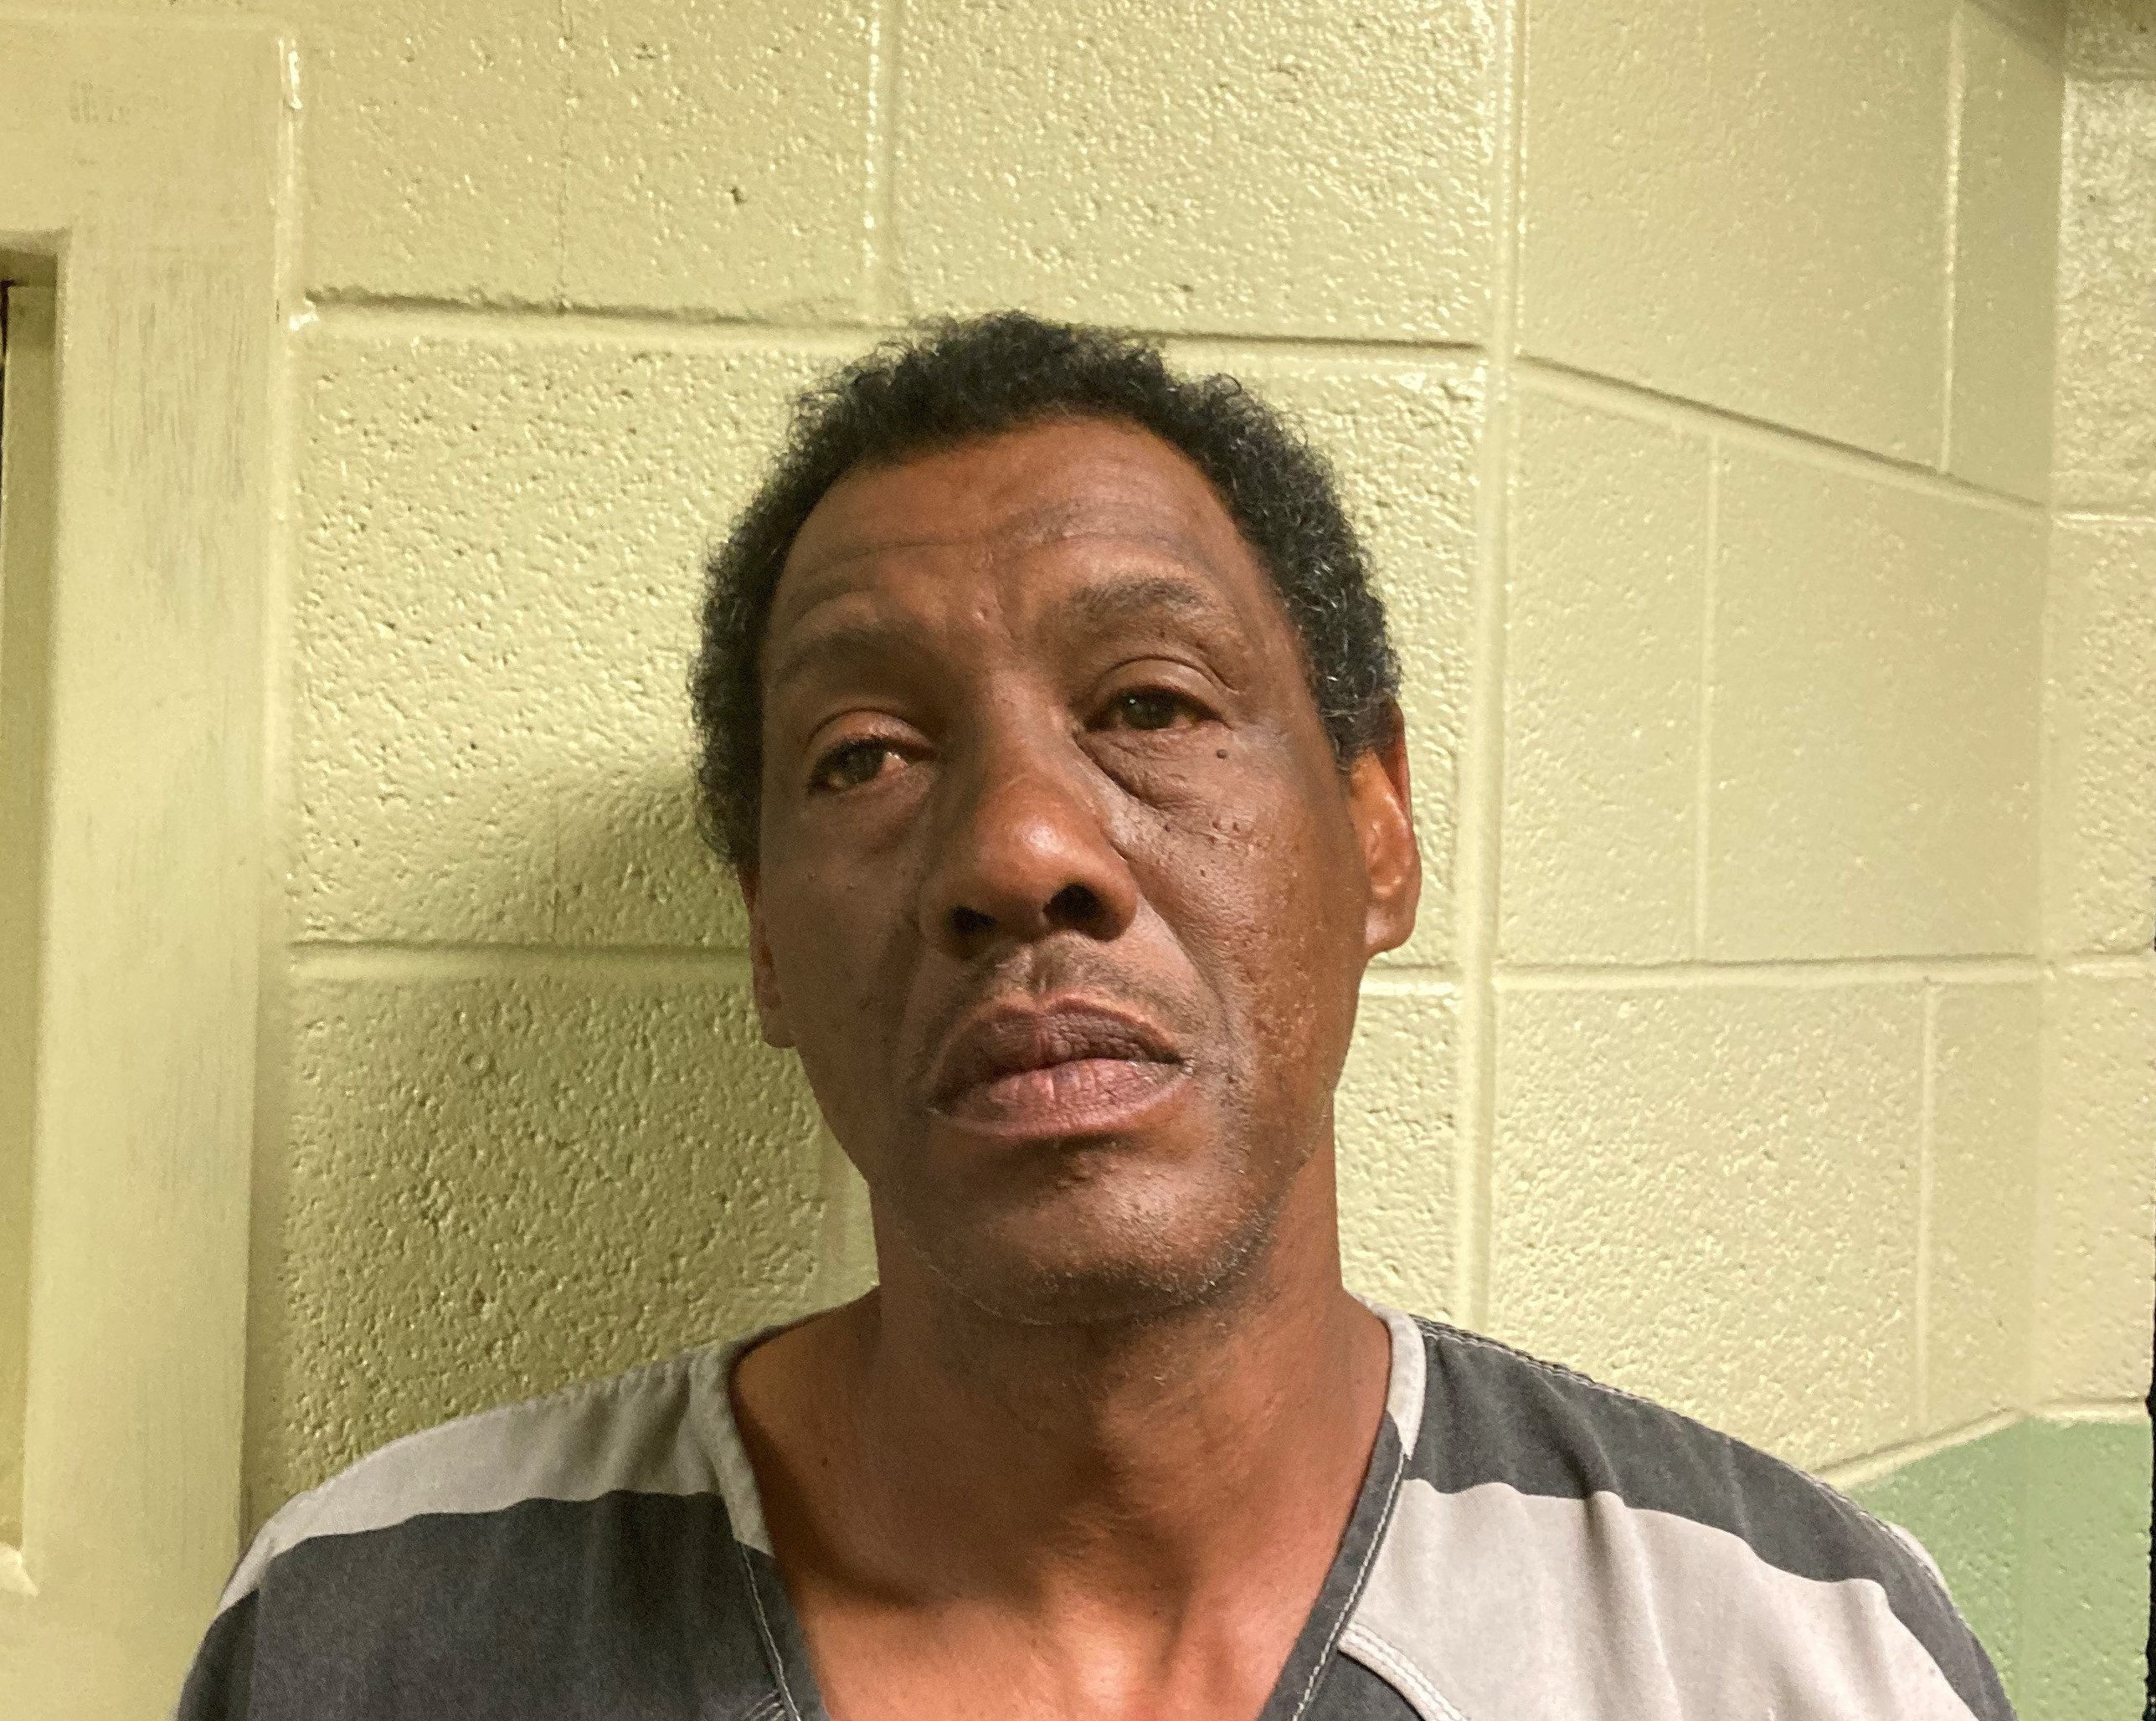 A Suspected Arsonist is Arrested for a Greeneville Apartment Fire in 2019